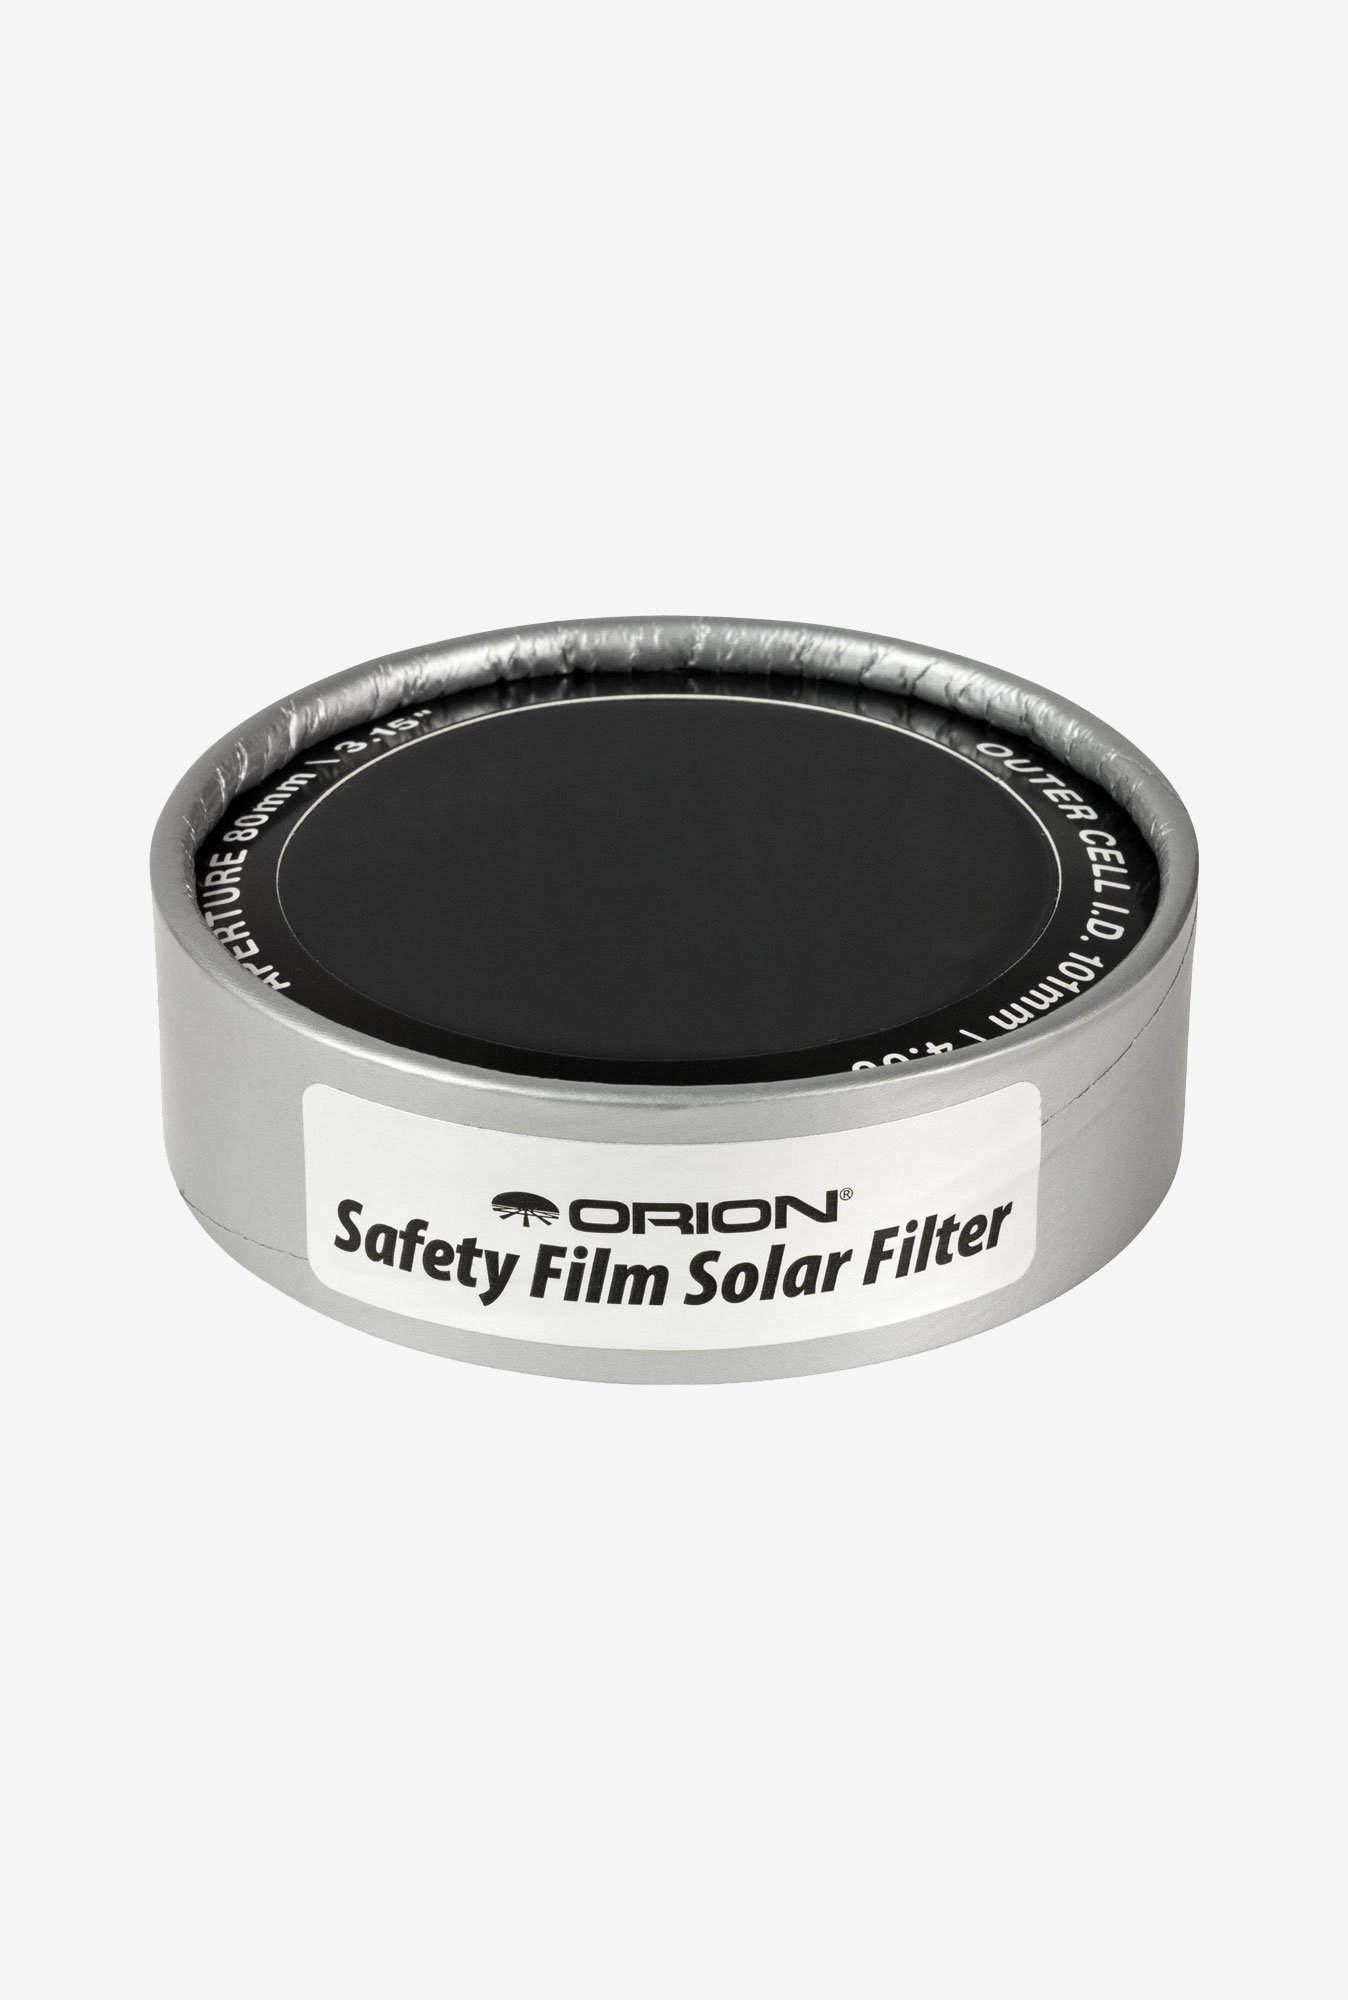 Orion 7785 E-Series Safety Film Solar Filter (Silver)